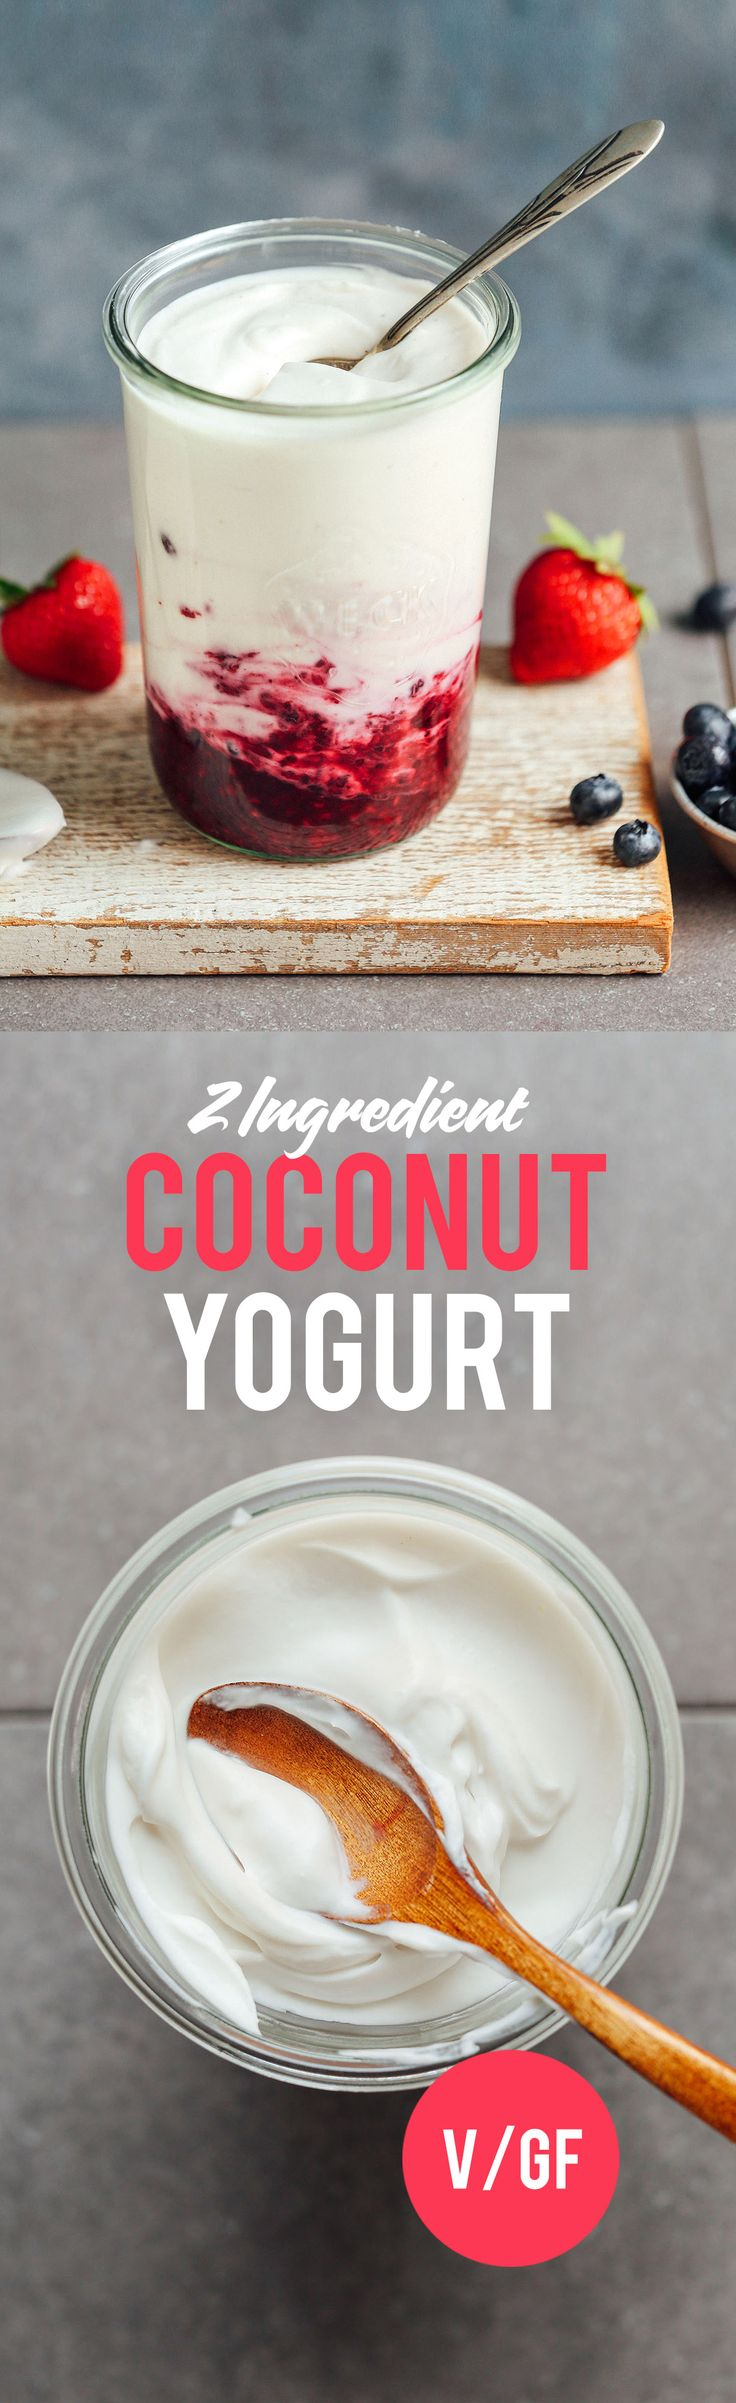 Make your own delicious coconut yogurt at home with only two ingredients!